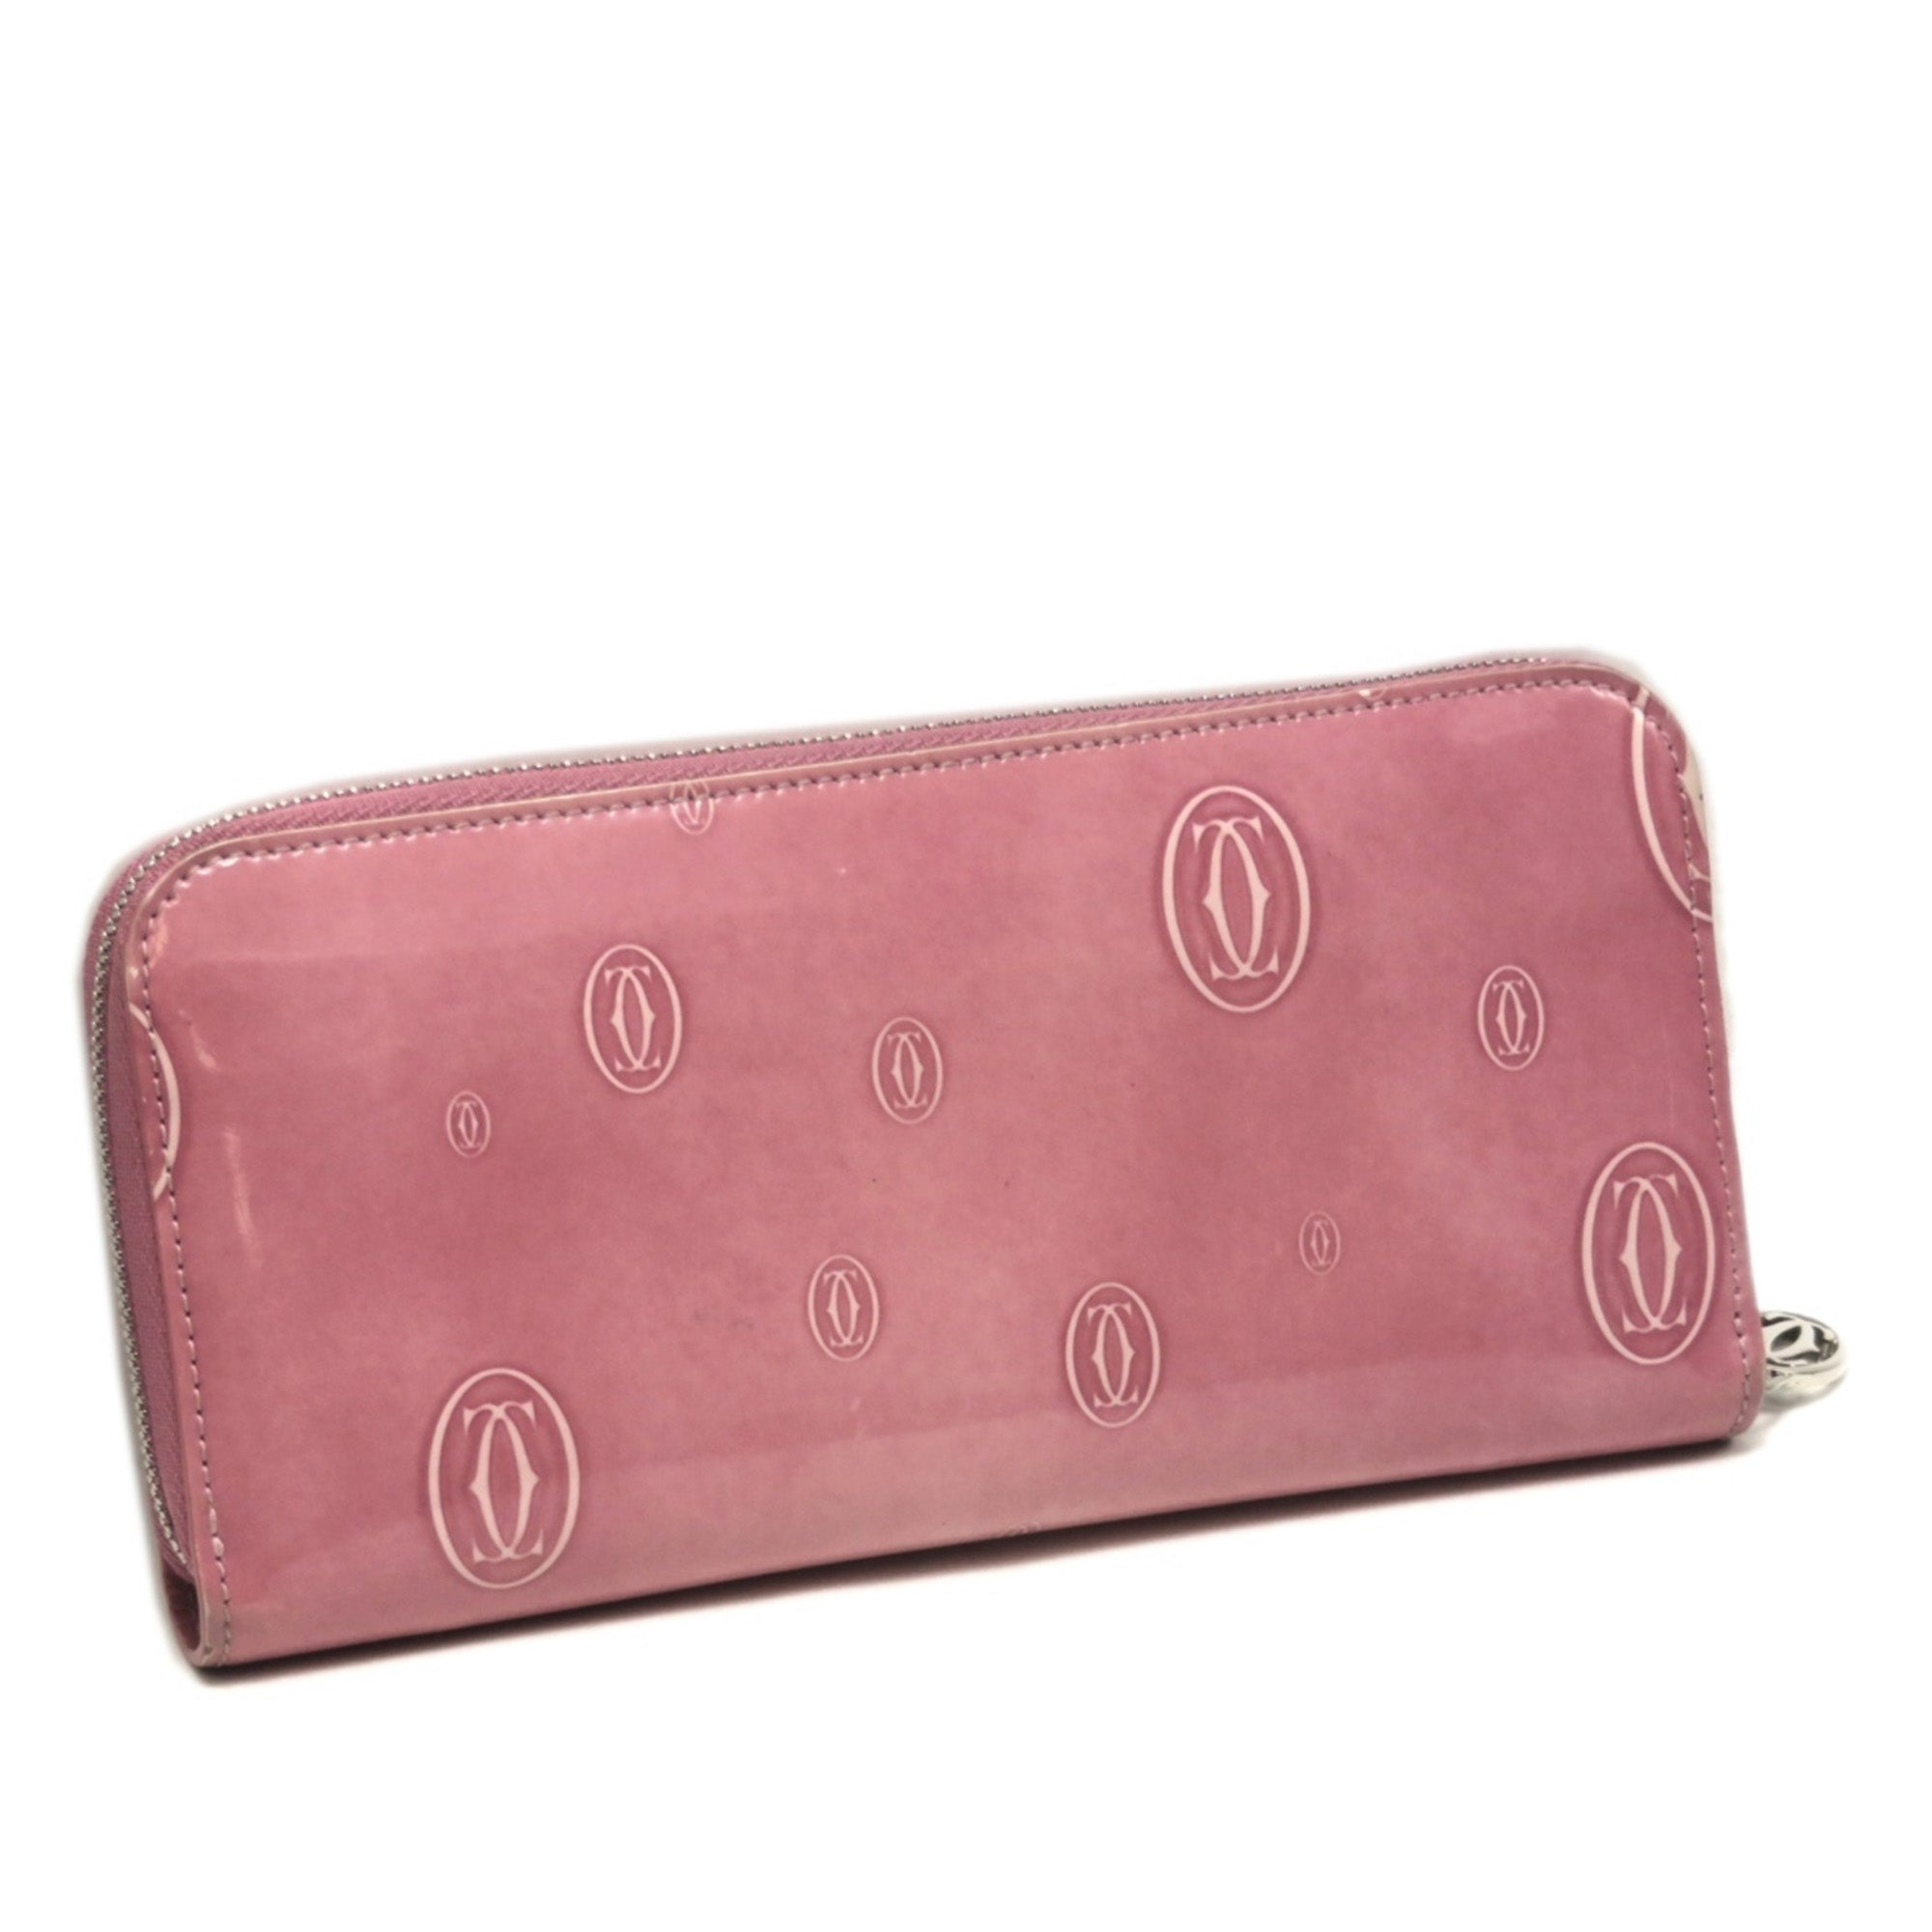 Cartier Pink Happy Birthday Patent Leather Long Wallet